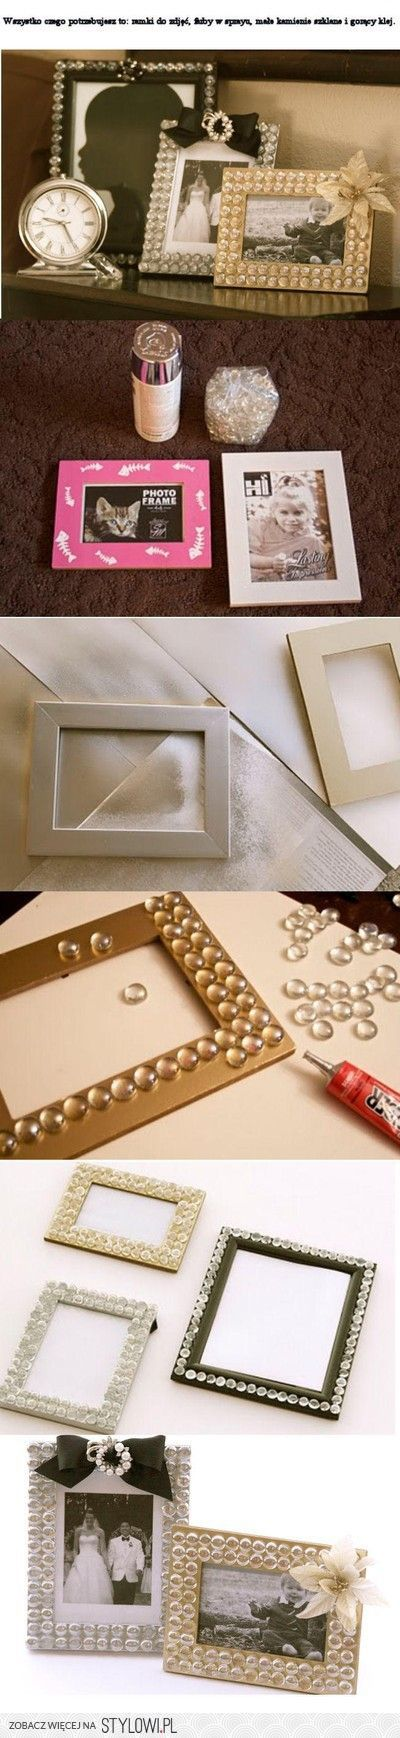 The 10 Easiest Crafts for Your Little | Esti room | Pinterest ...